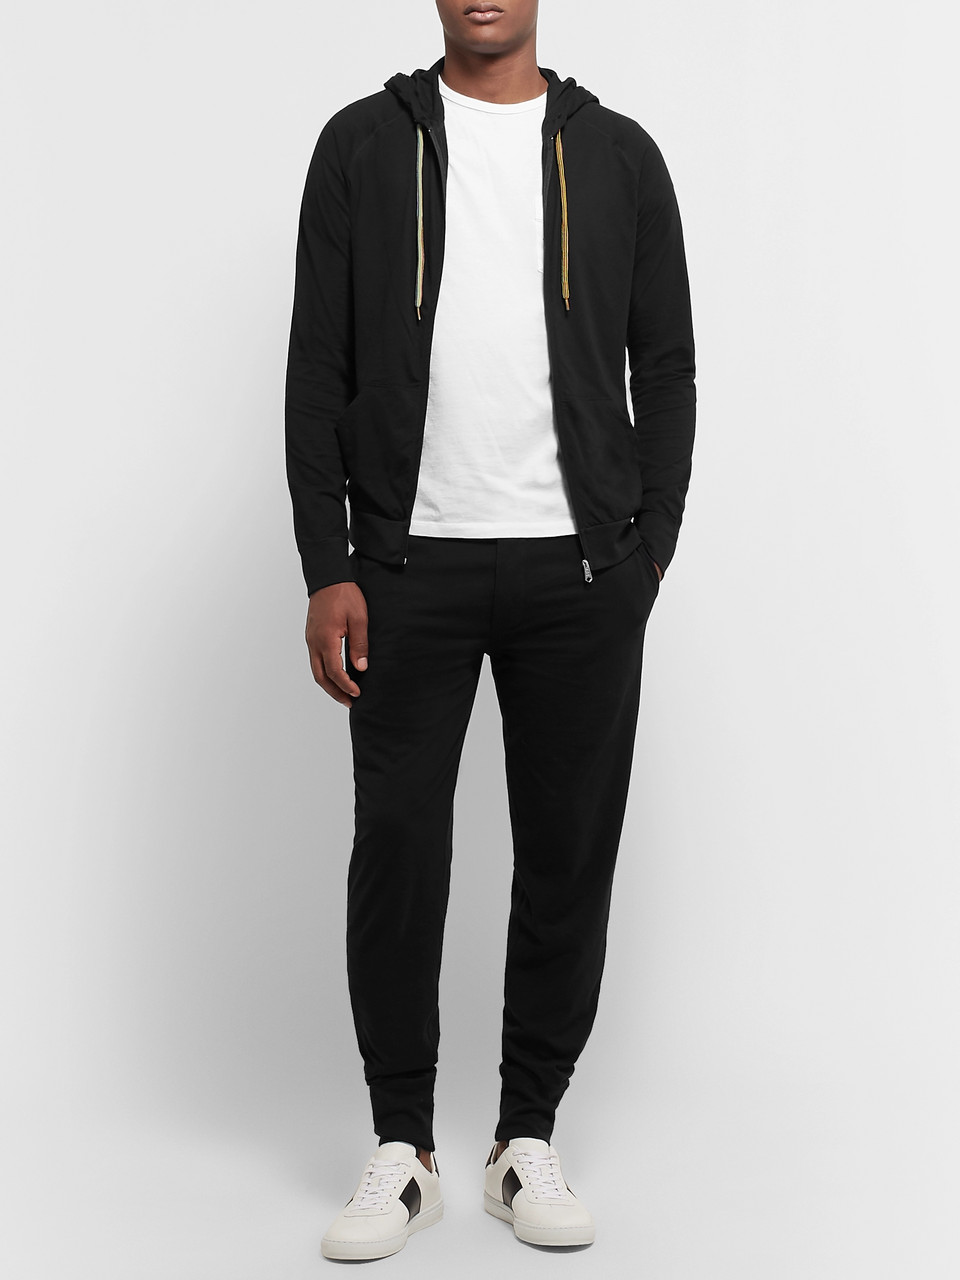 Paul Smith Cotton-Jersey Zip-Up Hoodie